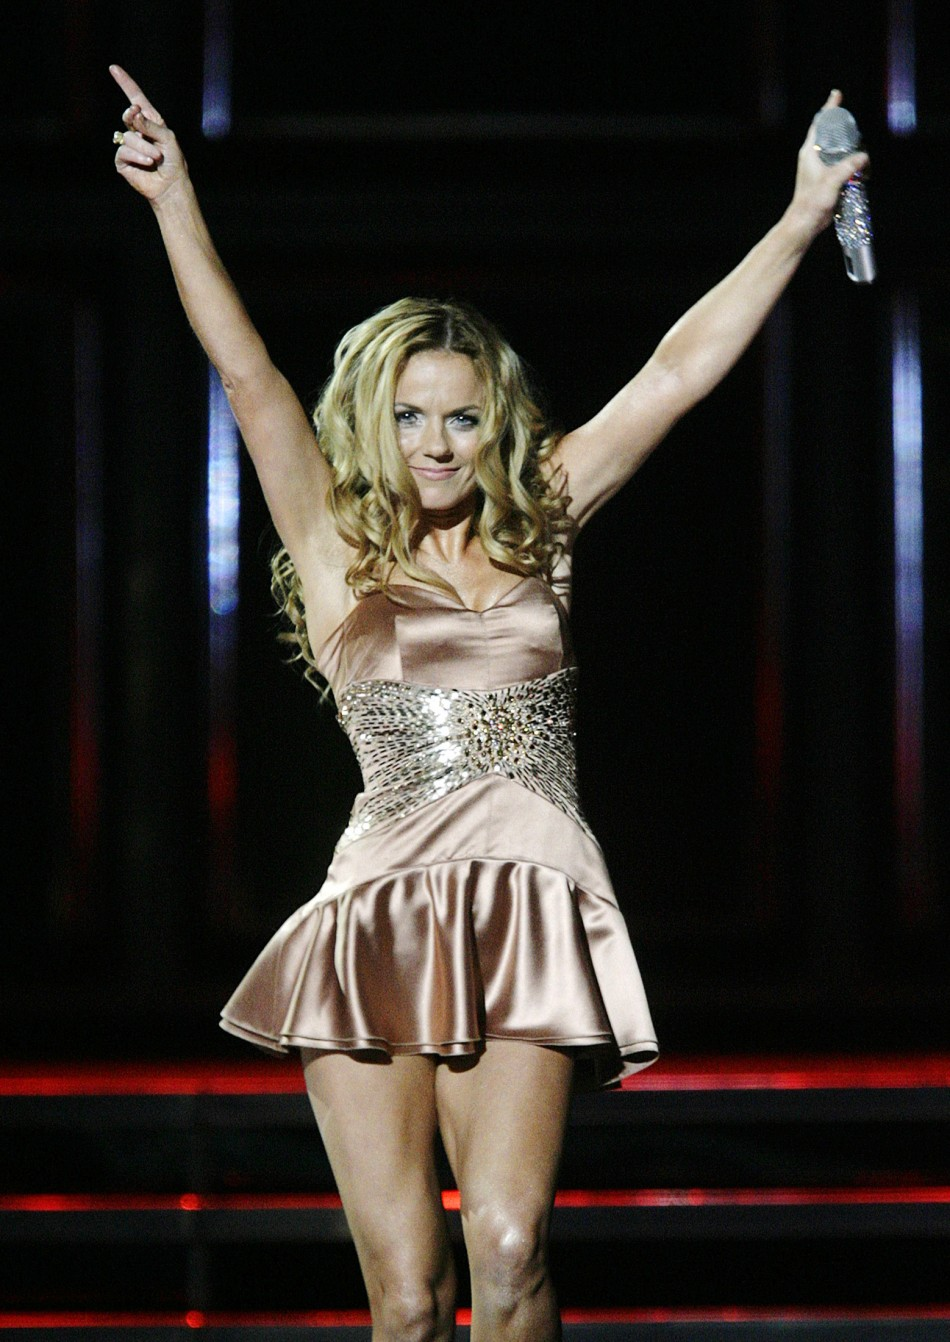 Spice Girl Geri Halliwell in action